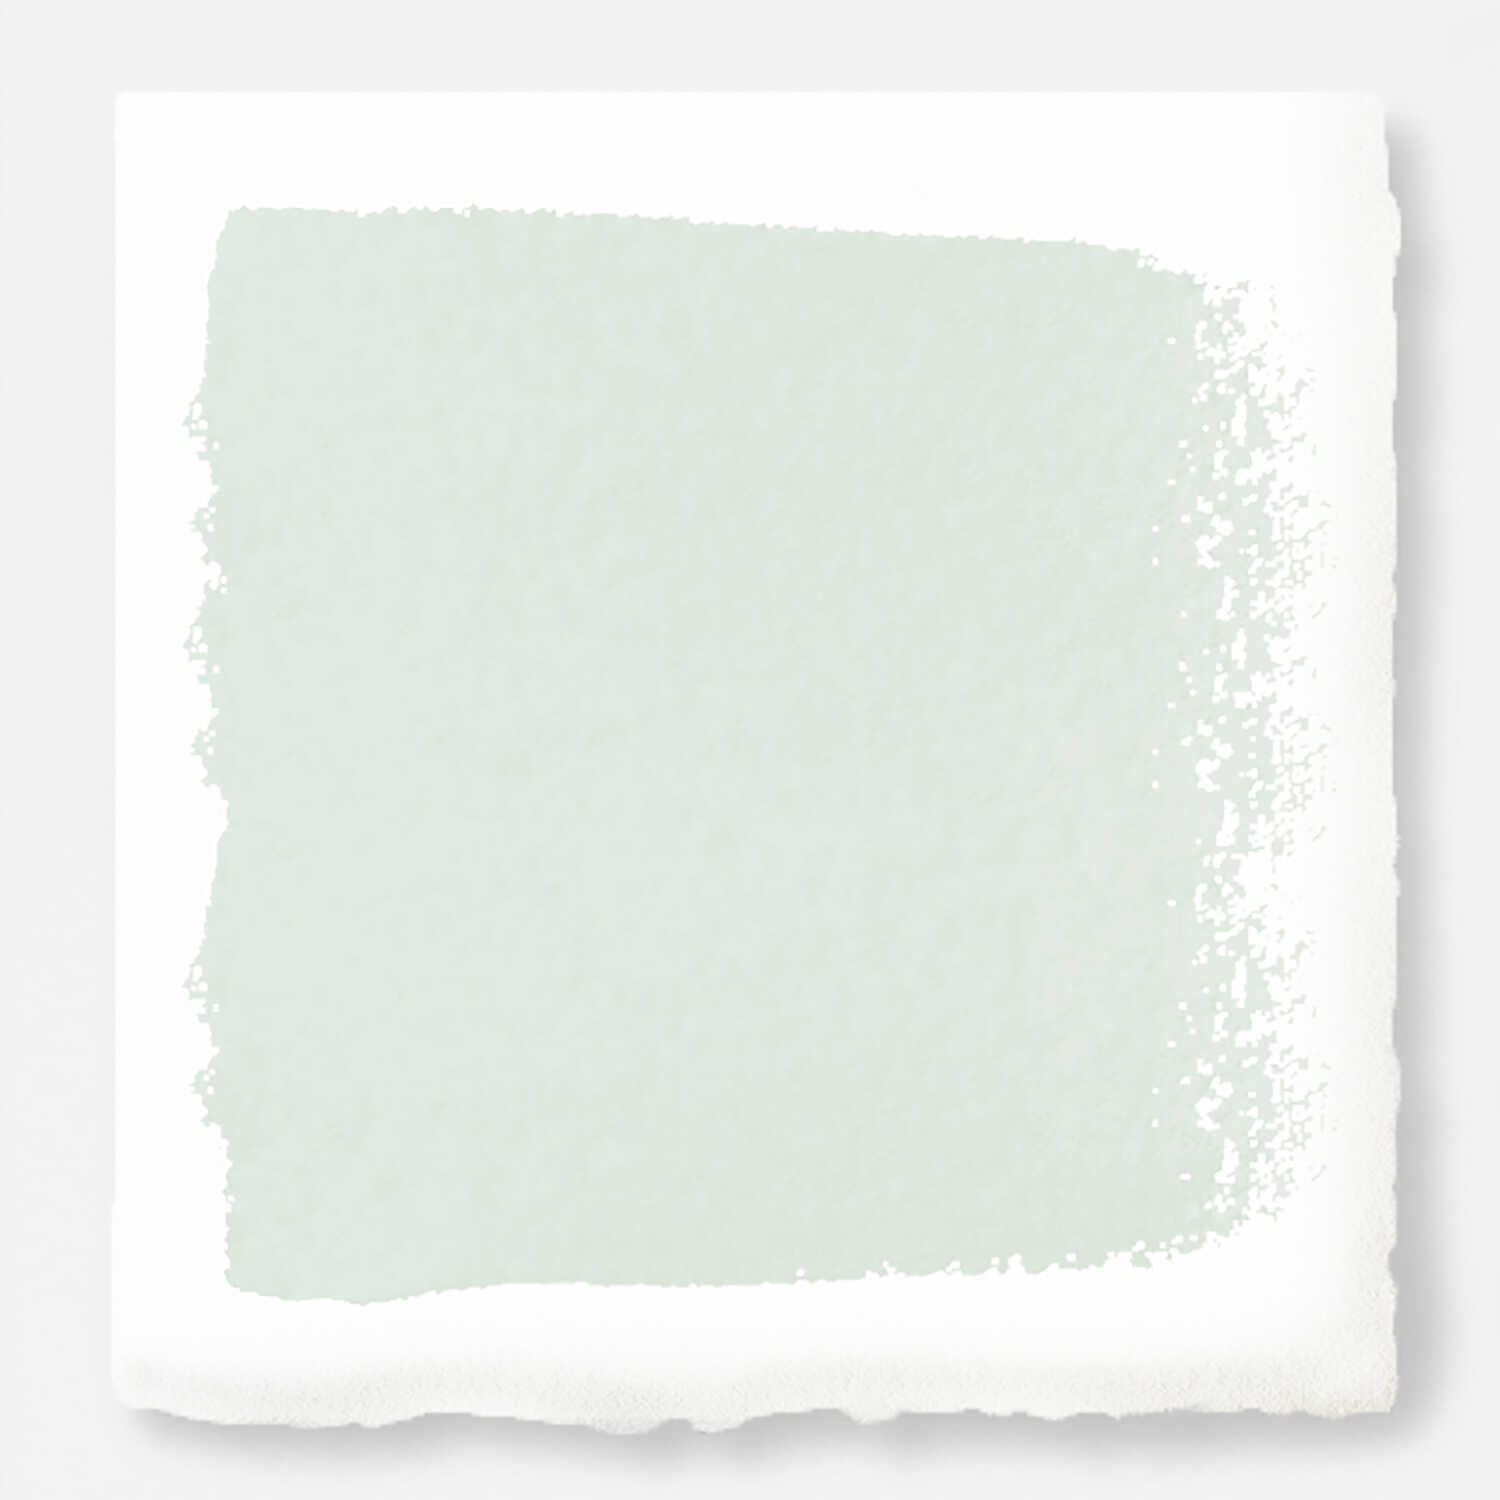 Magnolia Home  Satin  Cloudy Gray  Exterior Paint and Primer  1 gal.